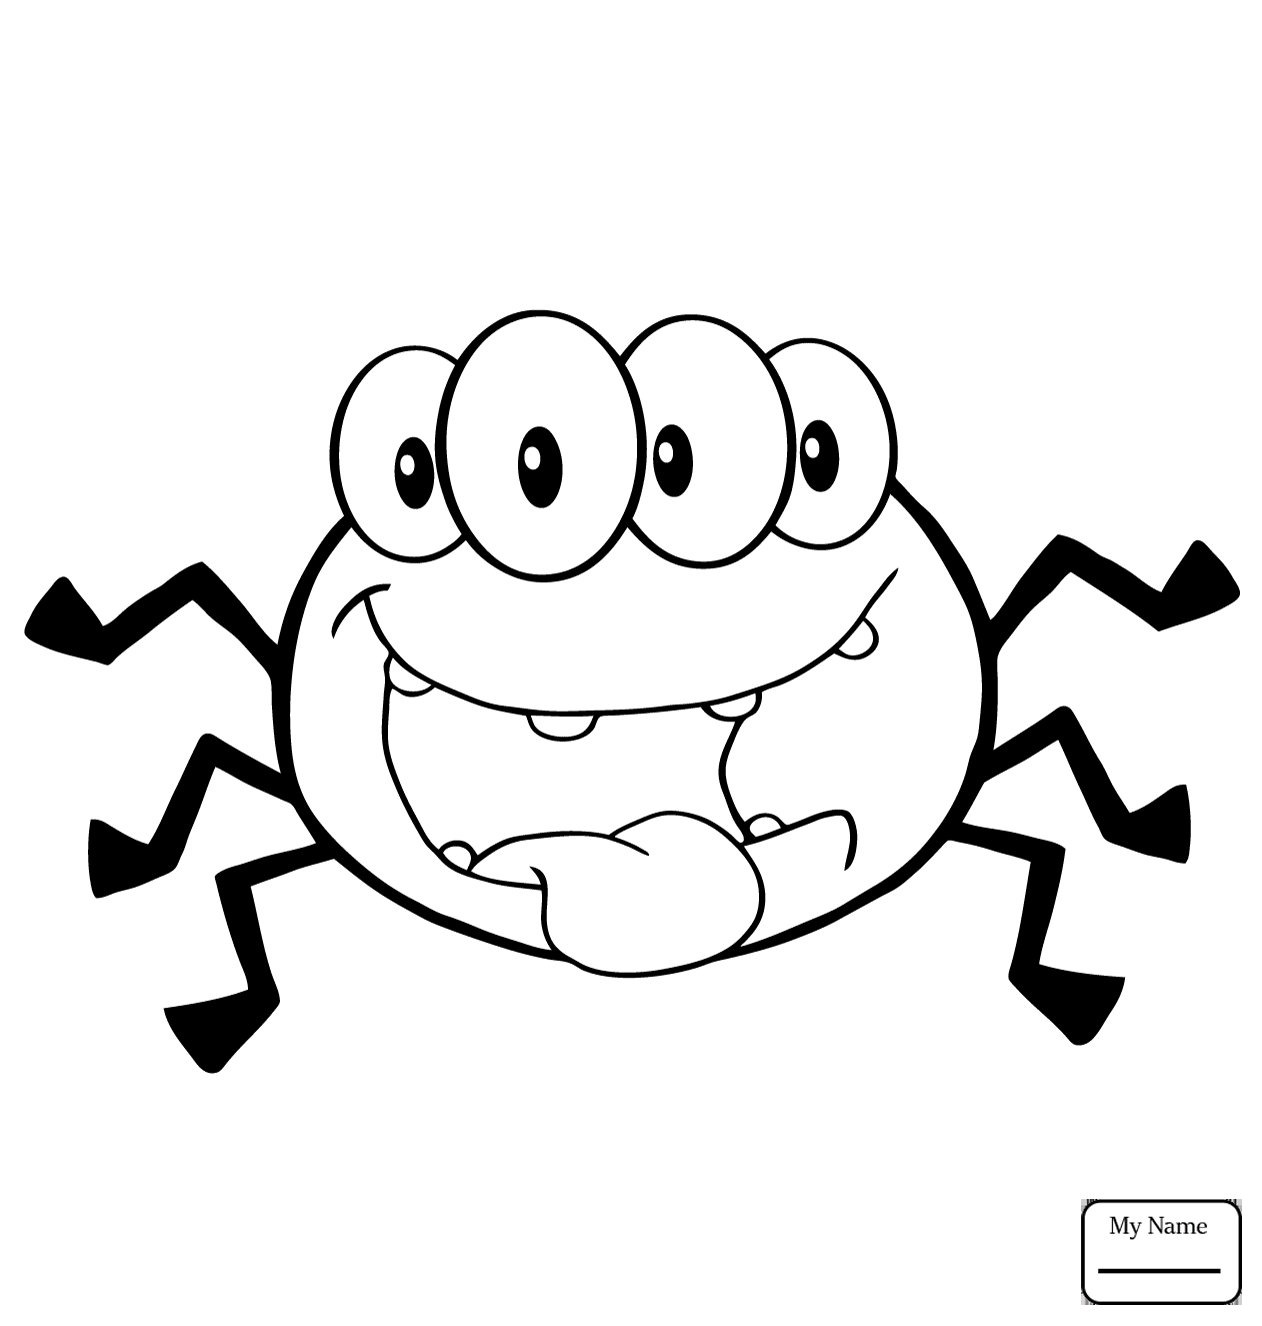 Cute Spider Drawing at GetDrawings.com | Free for personal ...